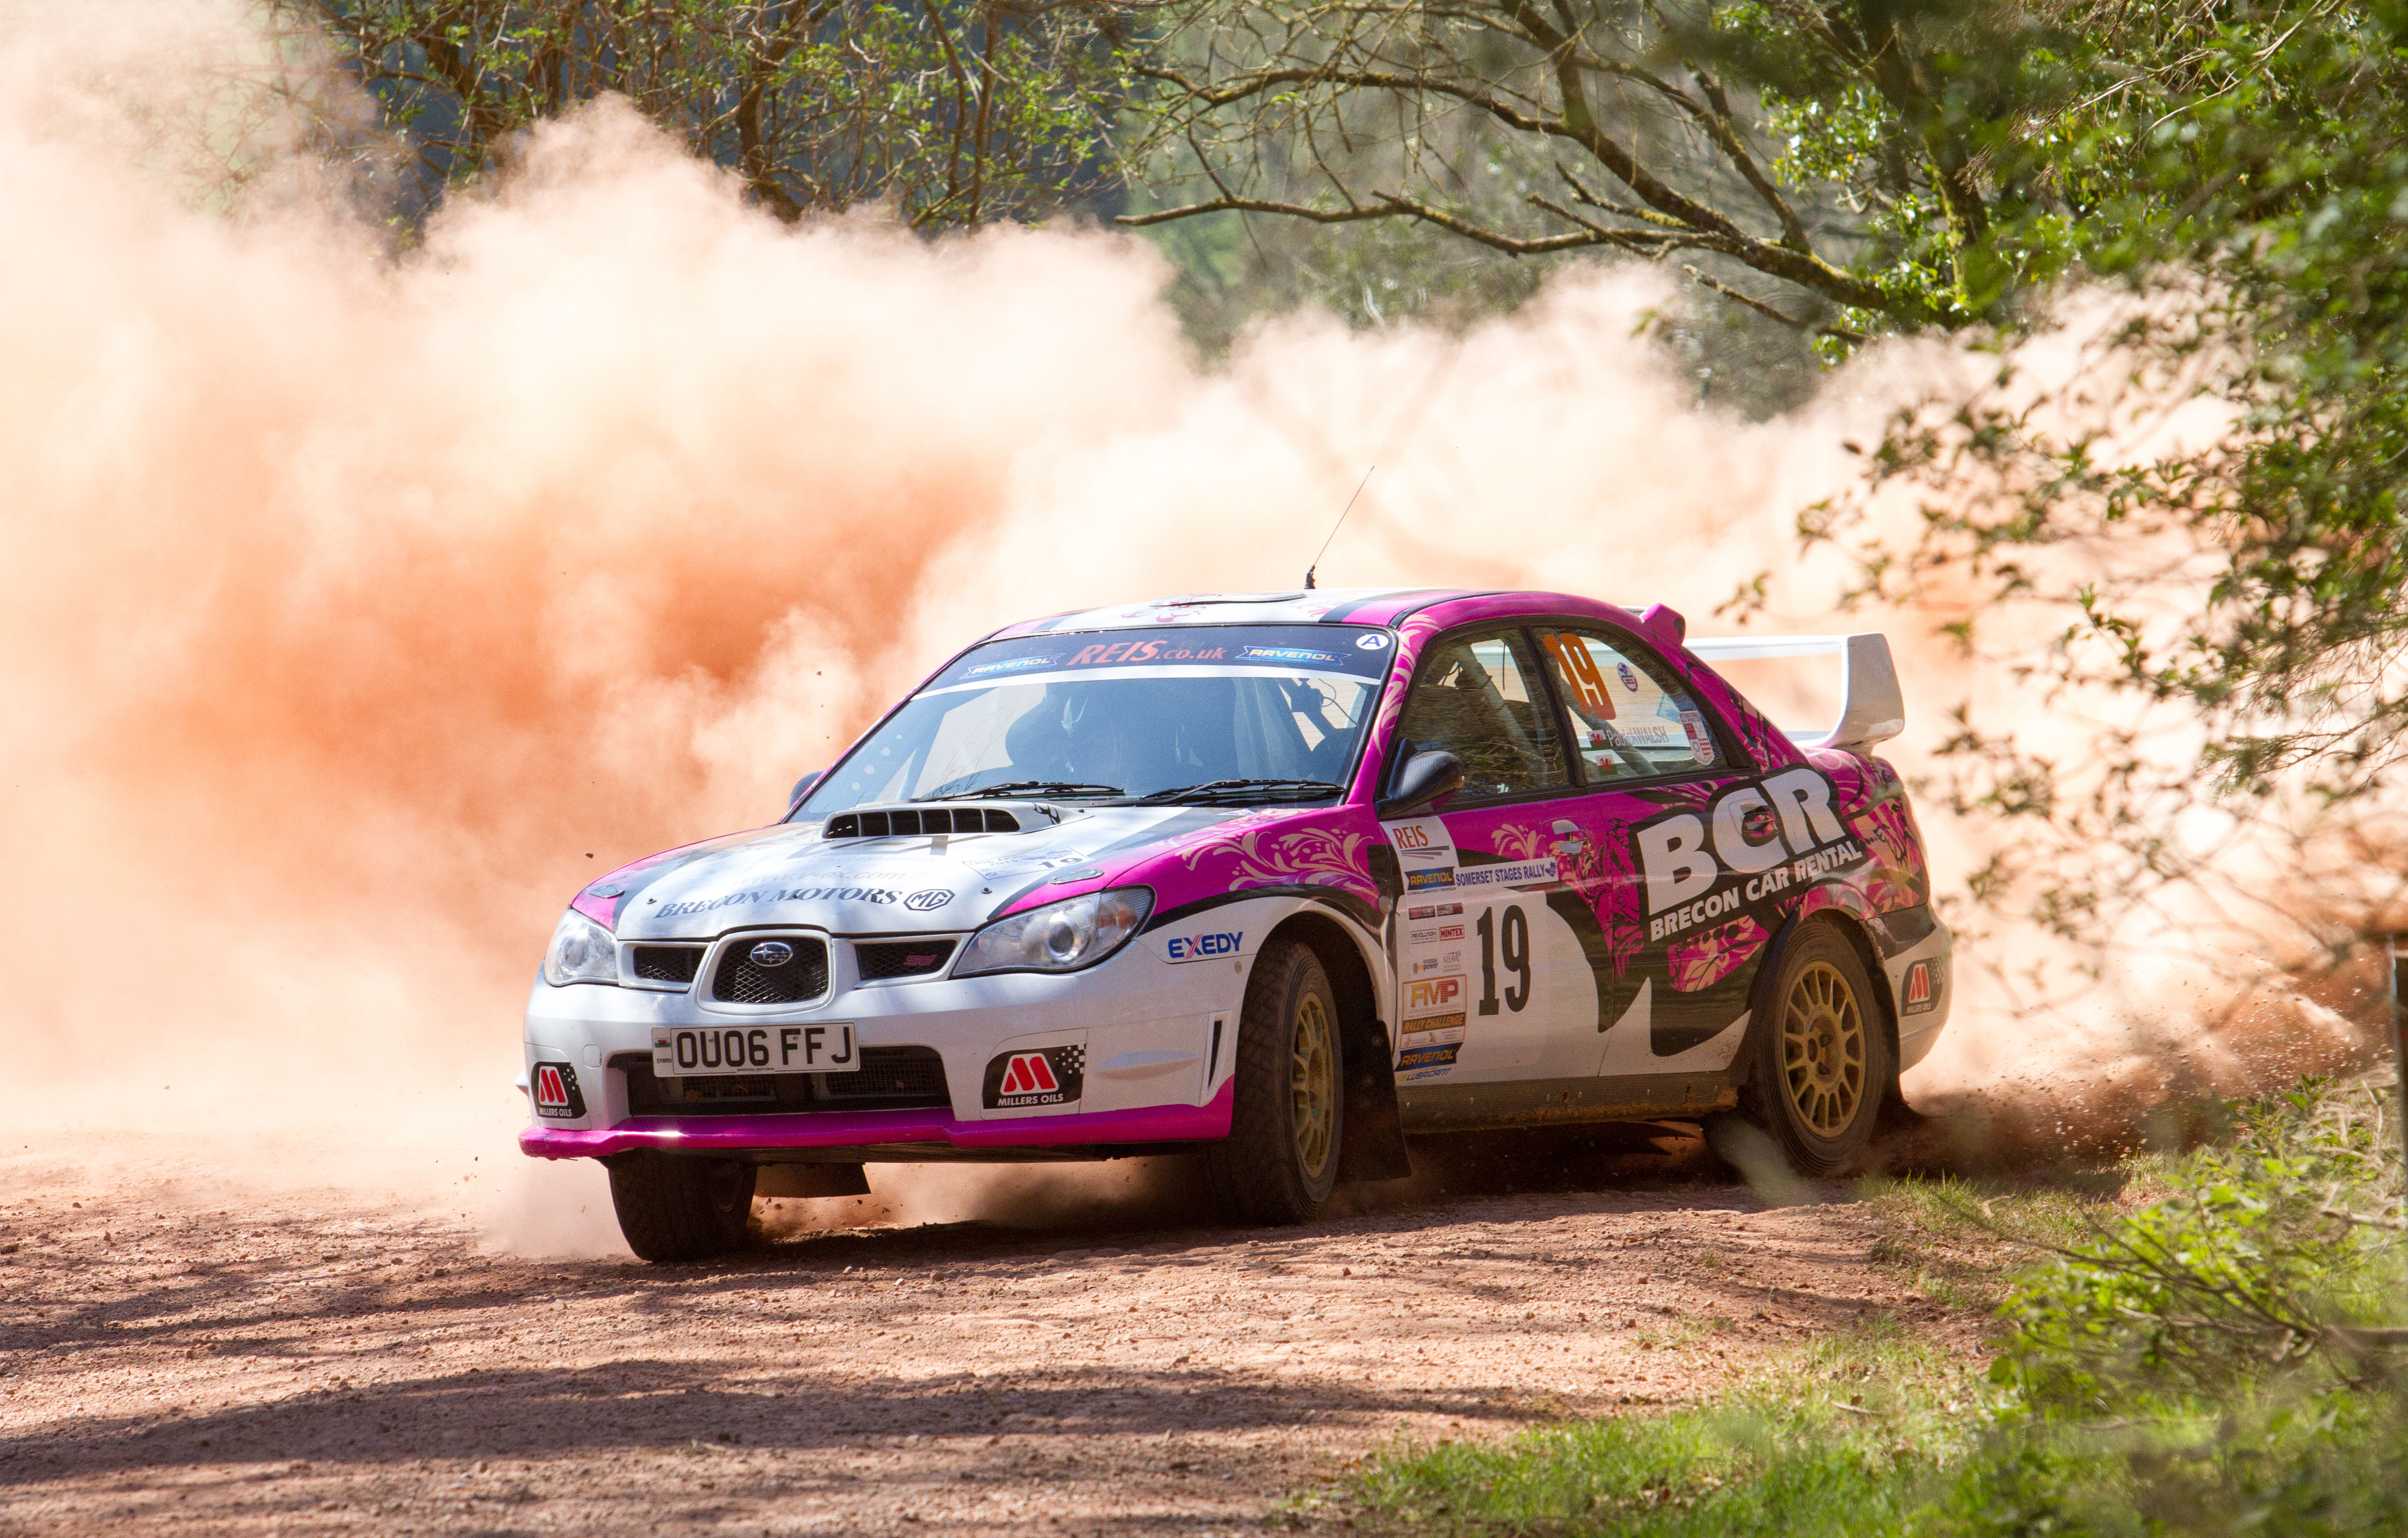 #1 British female rally driver Sara Williams heads to the desert for FIA rally project